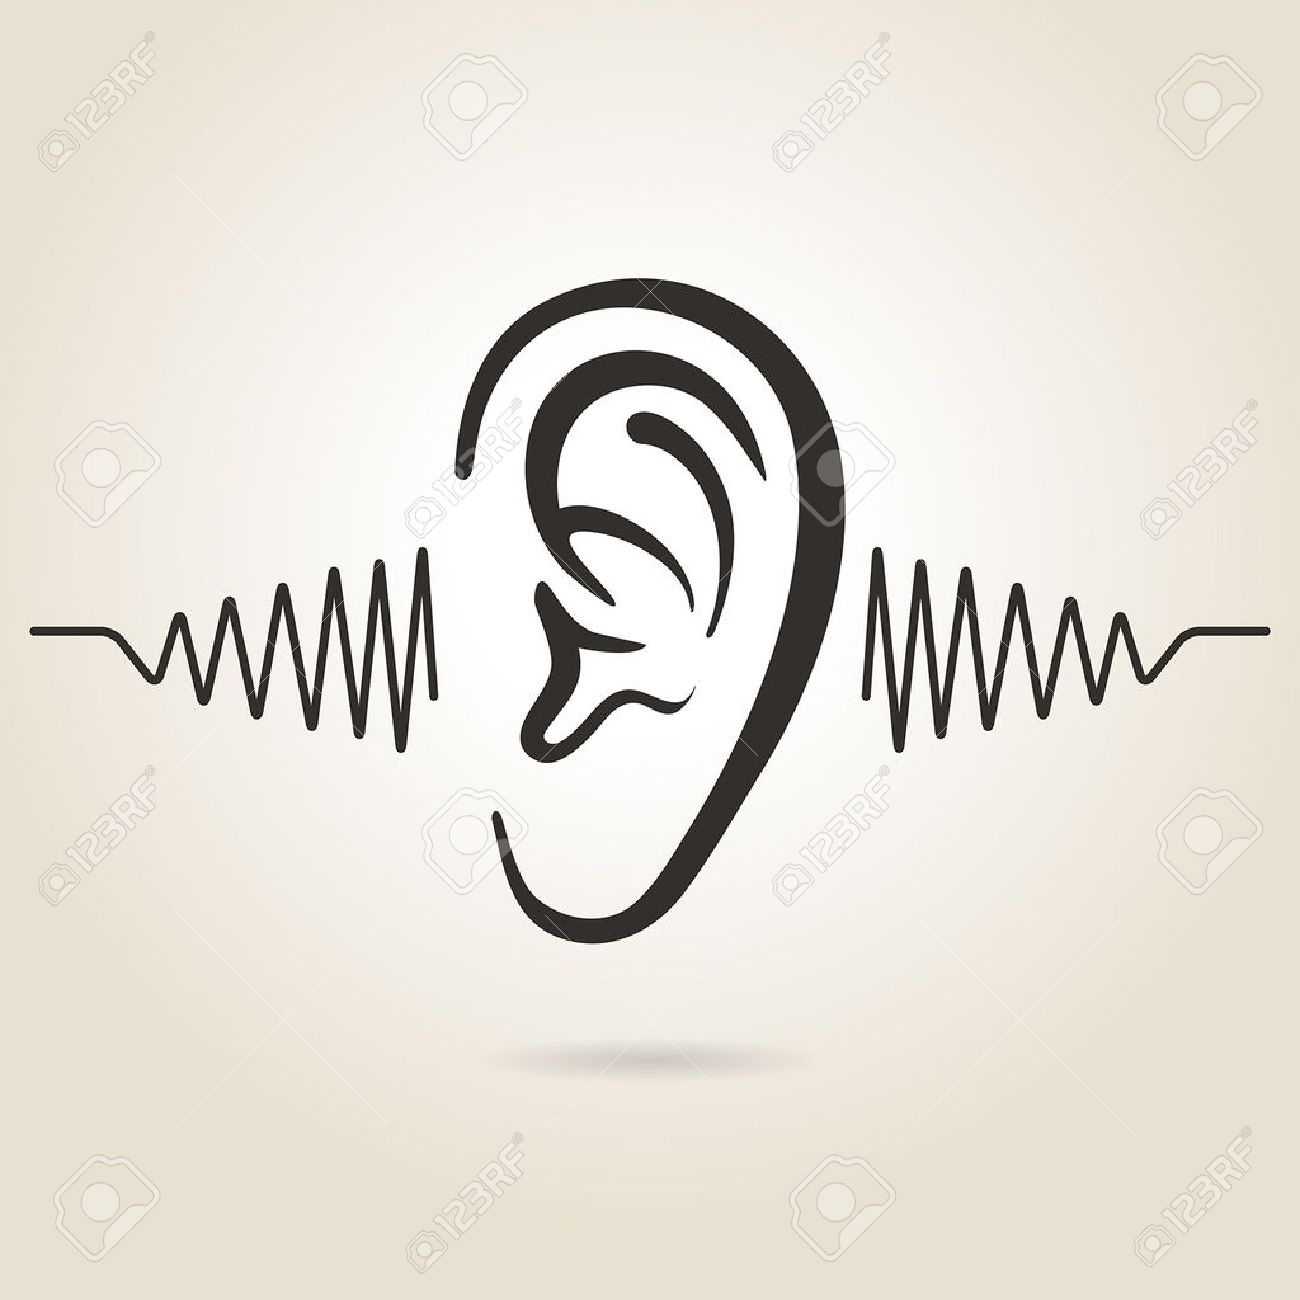 ear icon on light background - 31619170